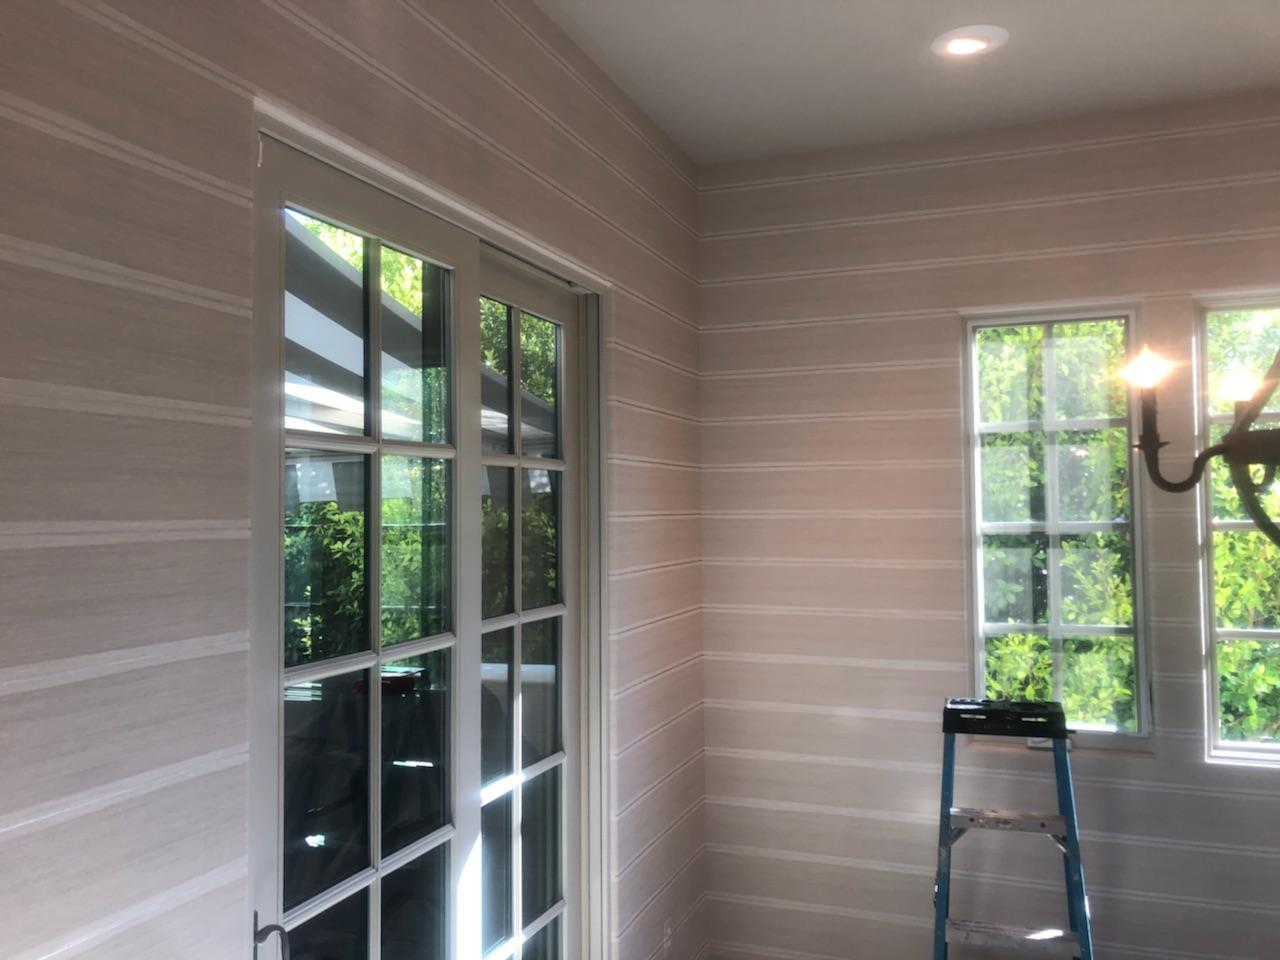 Horizontal Line Wallcovering & Installation